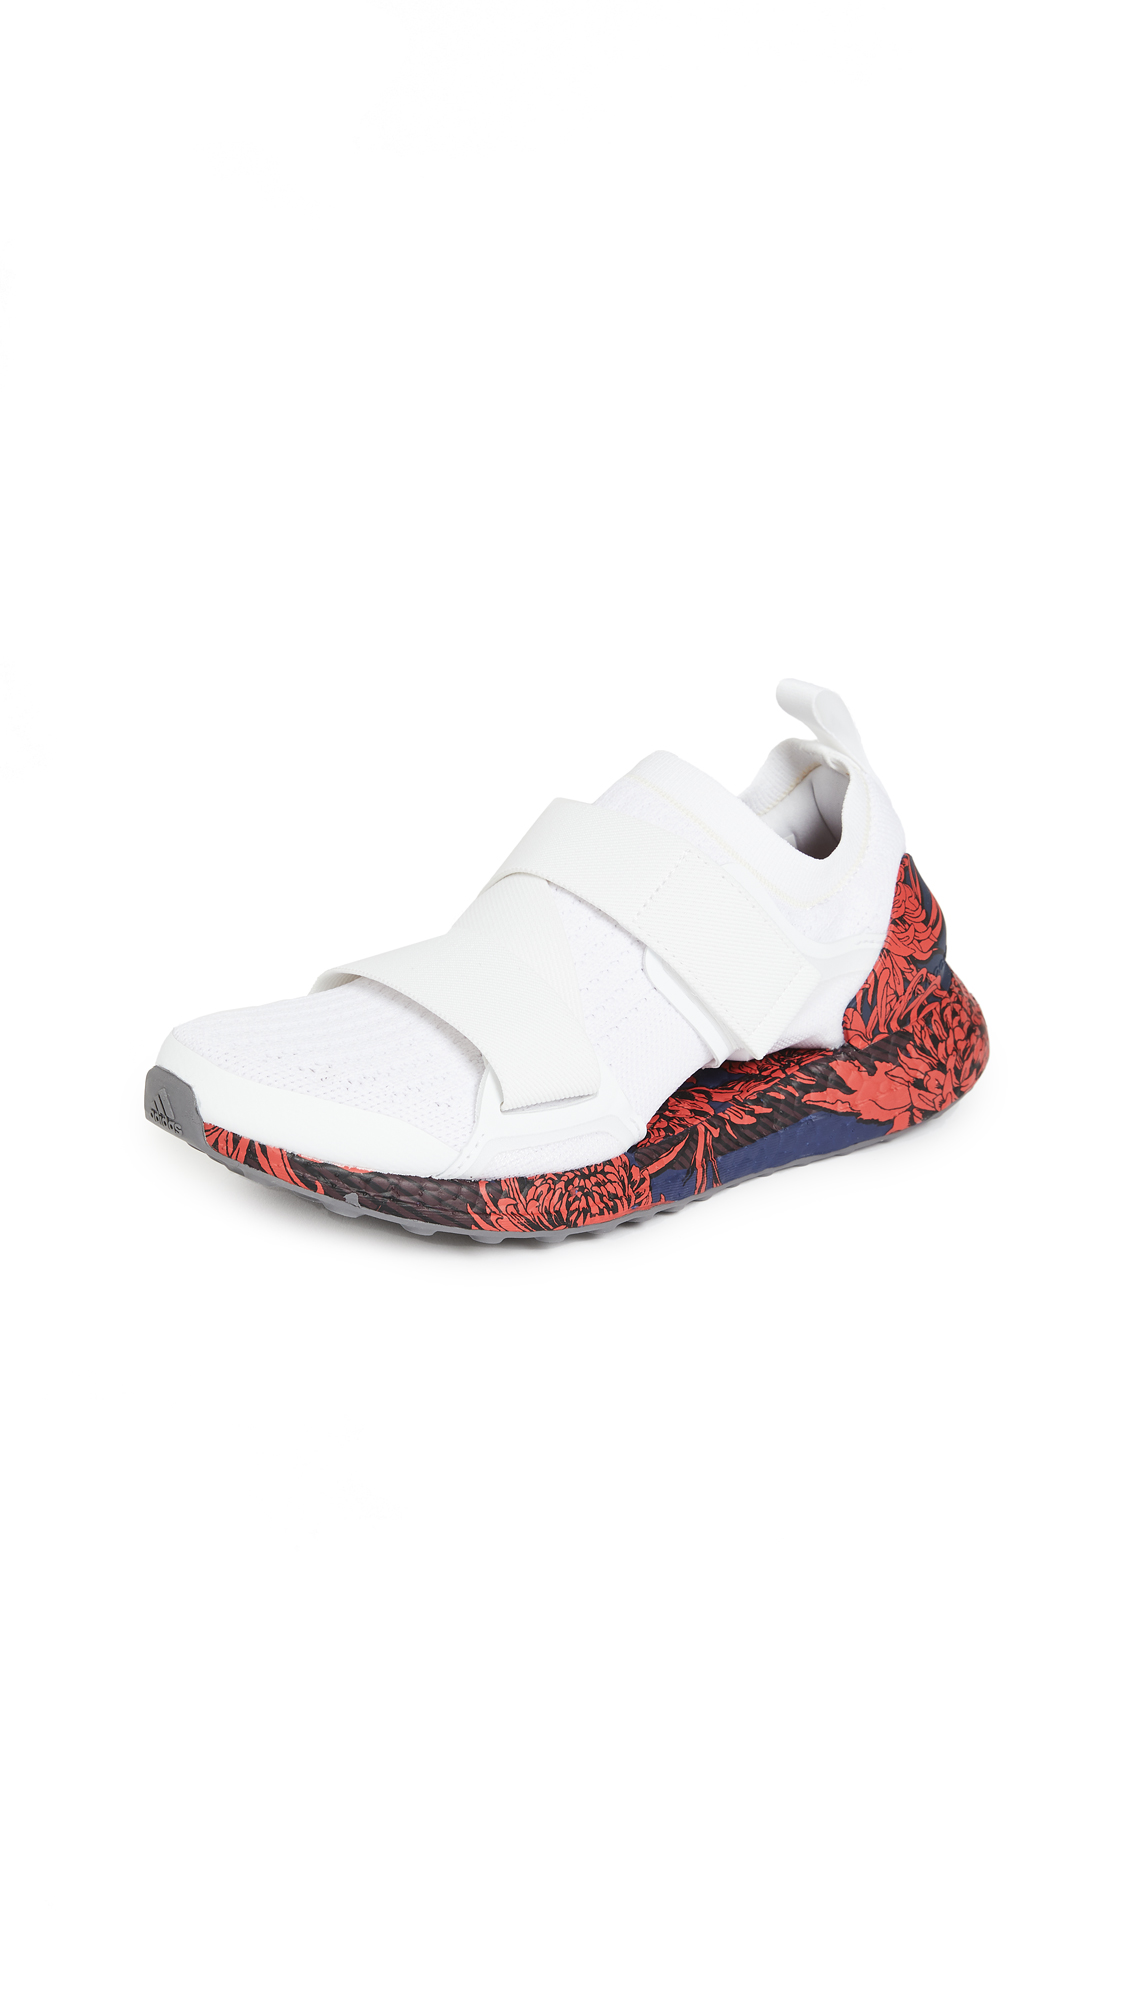 adidas by Stella McCartney Asmc Ultraboost X Printed Sneakers